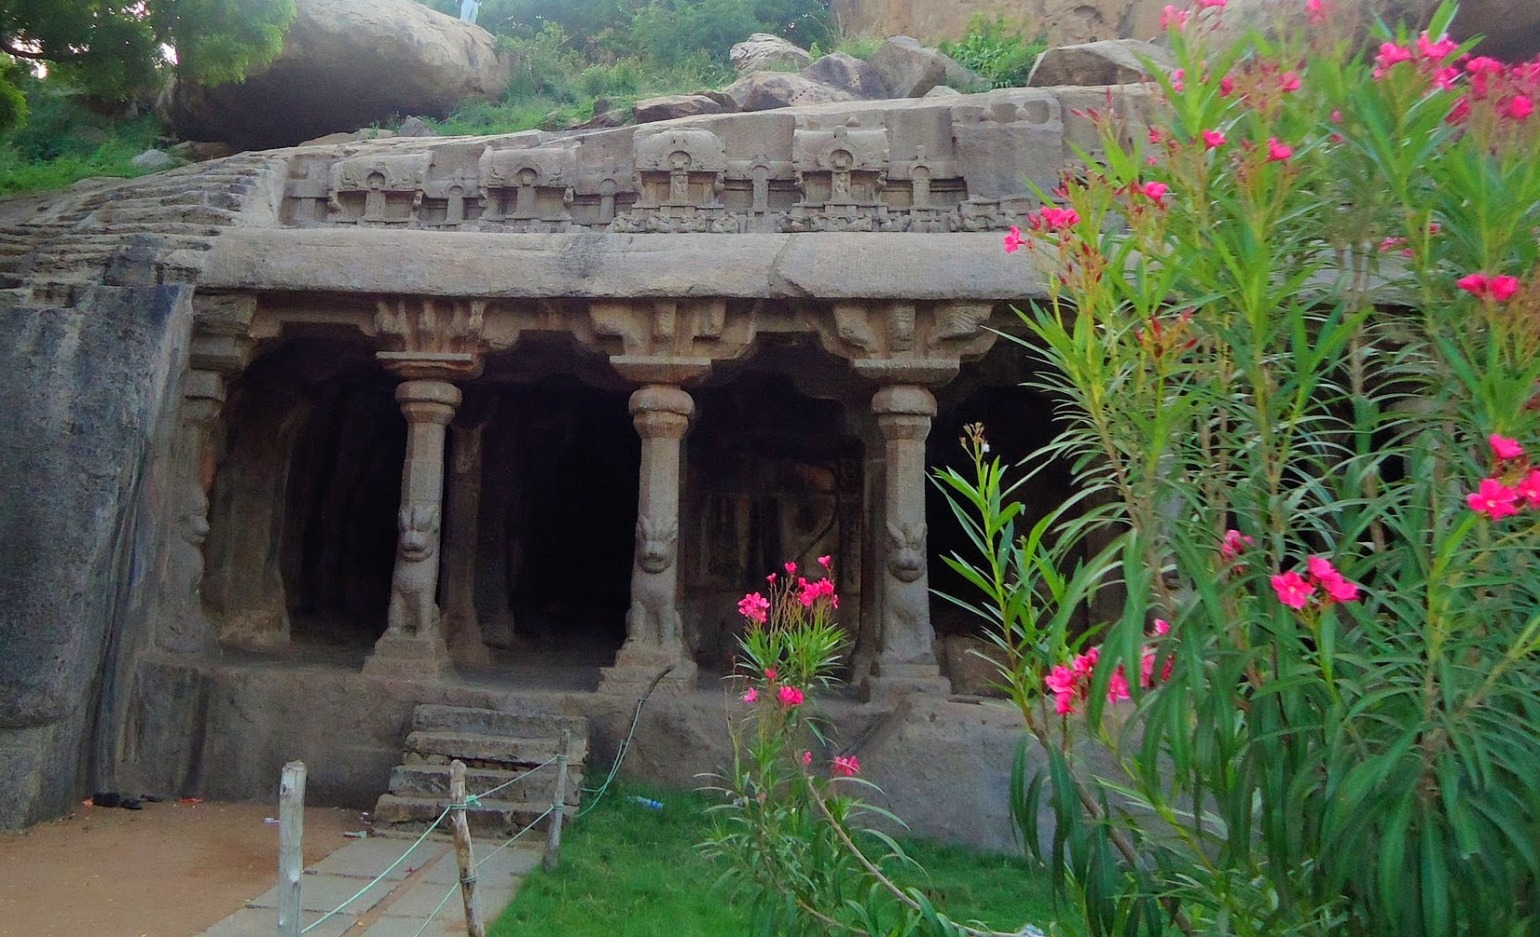 A Rich Cultural Heritage - A picture of a monolithic cave